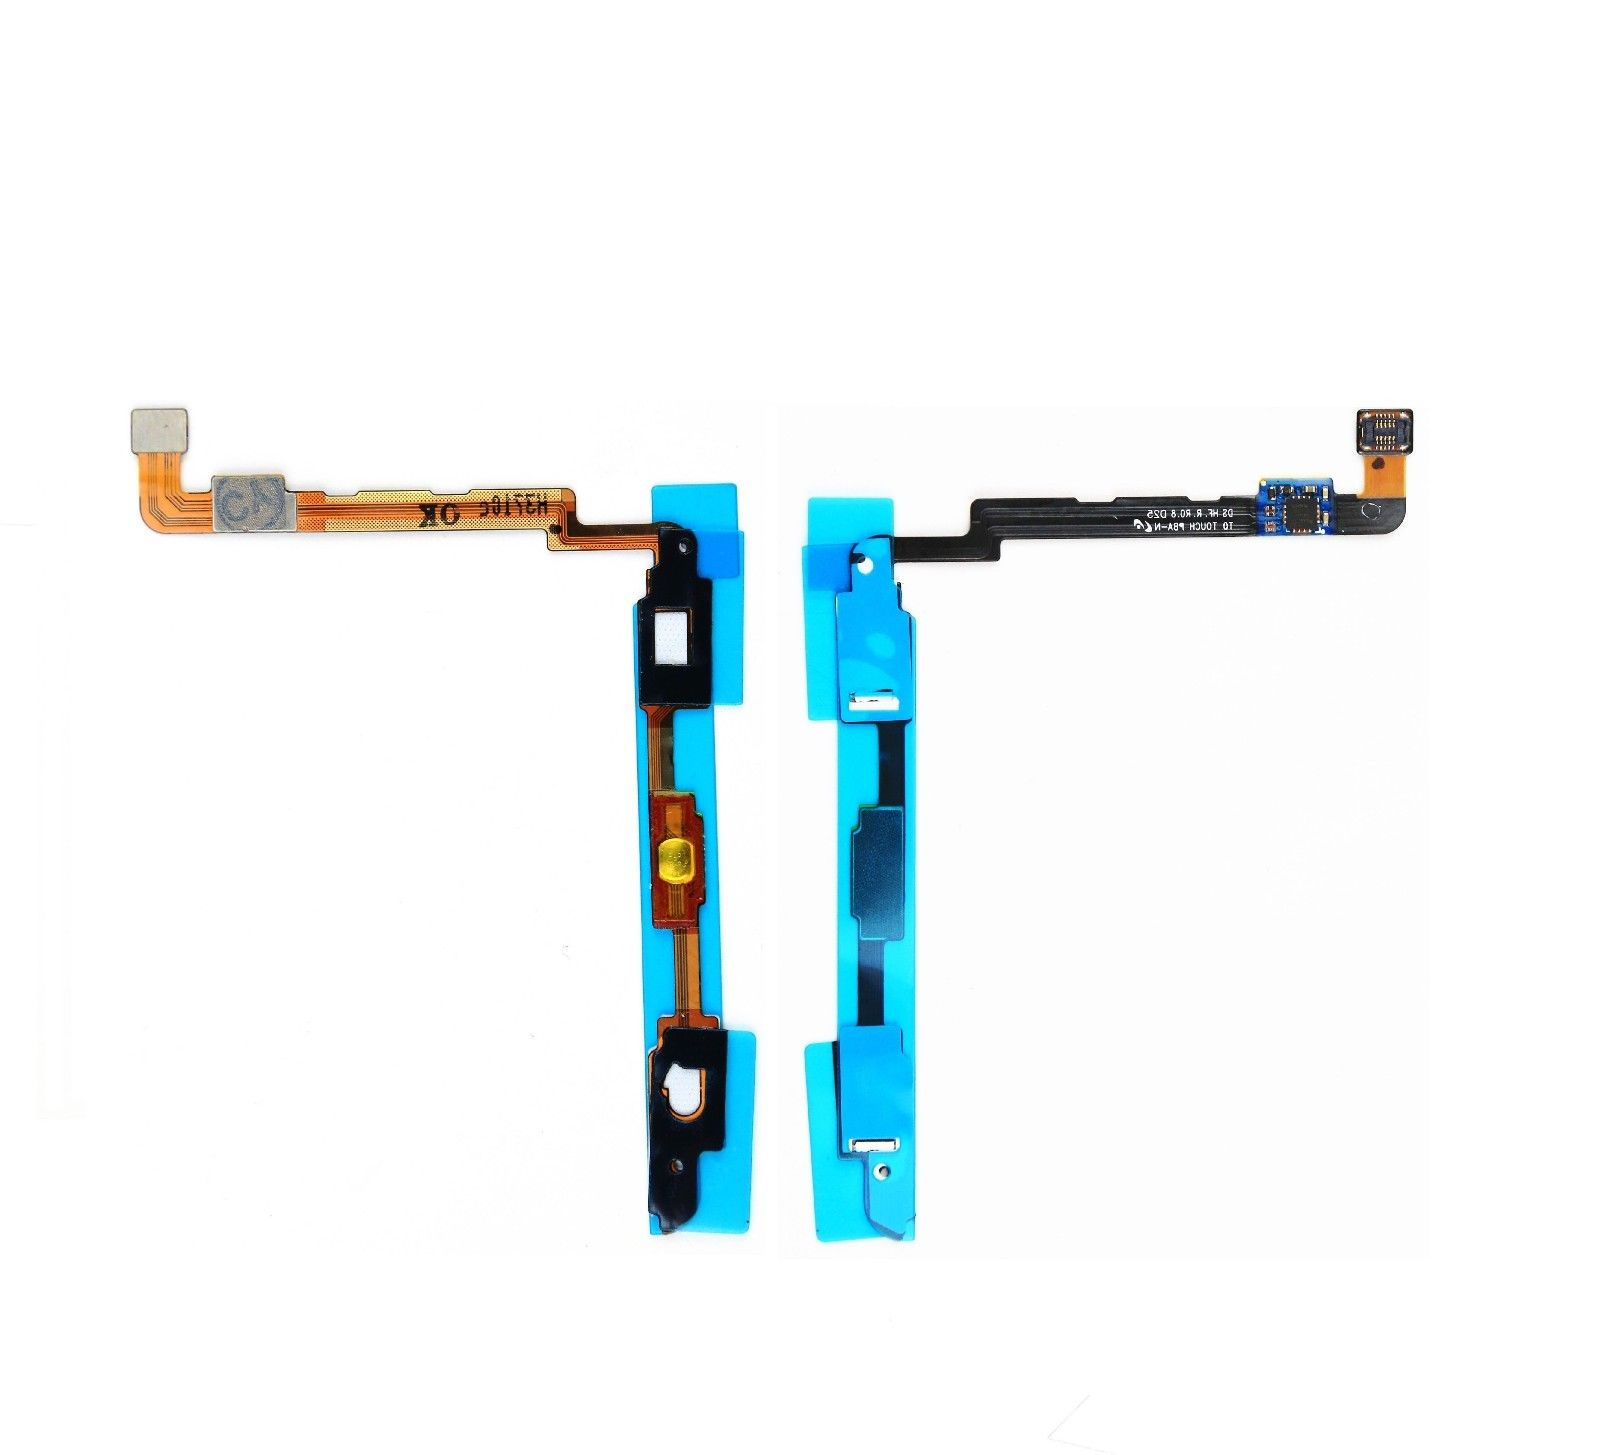 Sinbeda New For Samsung Galaxy Note 2 II N7100 Keyboard Sensor Touch Signal Home Button Menu Light Flex Cable